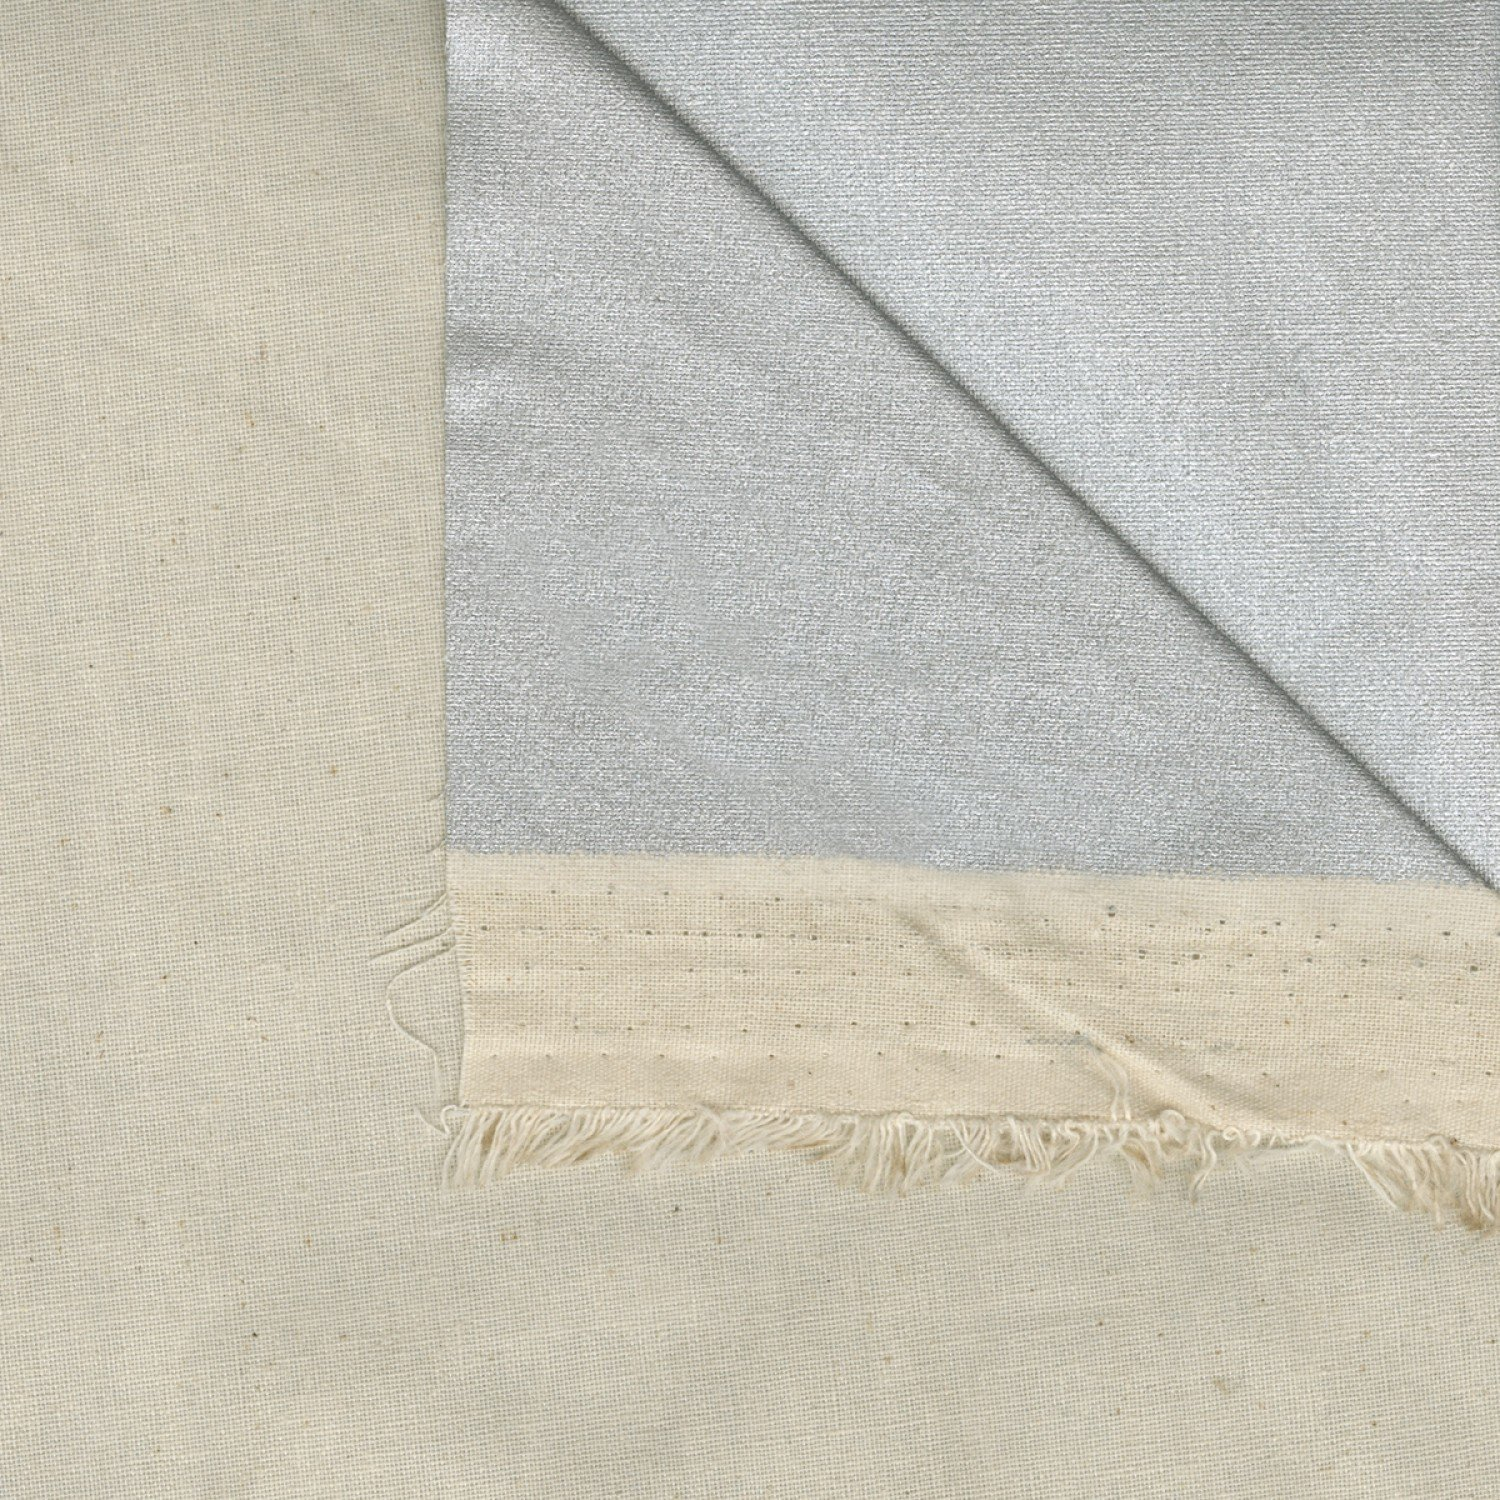 Cotton Fabric with Heat Reflective Coating